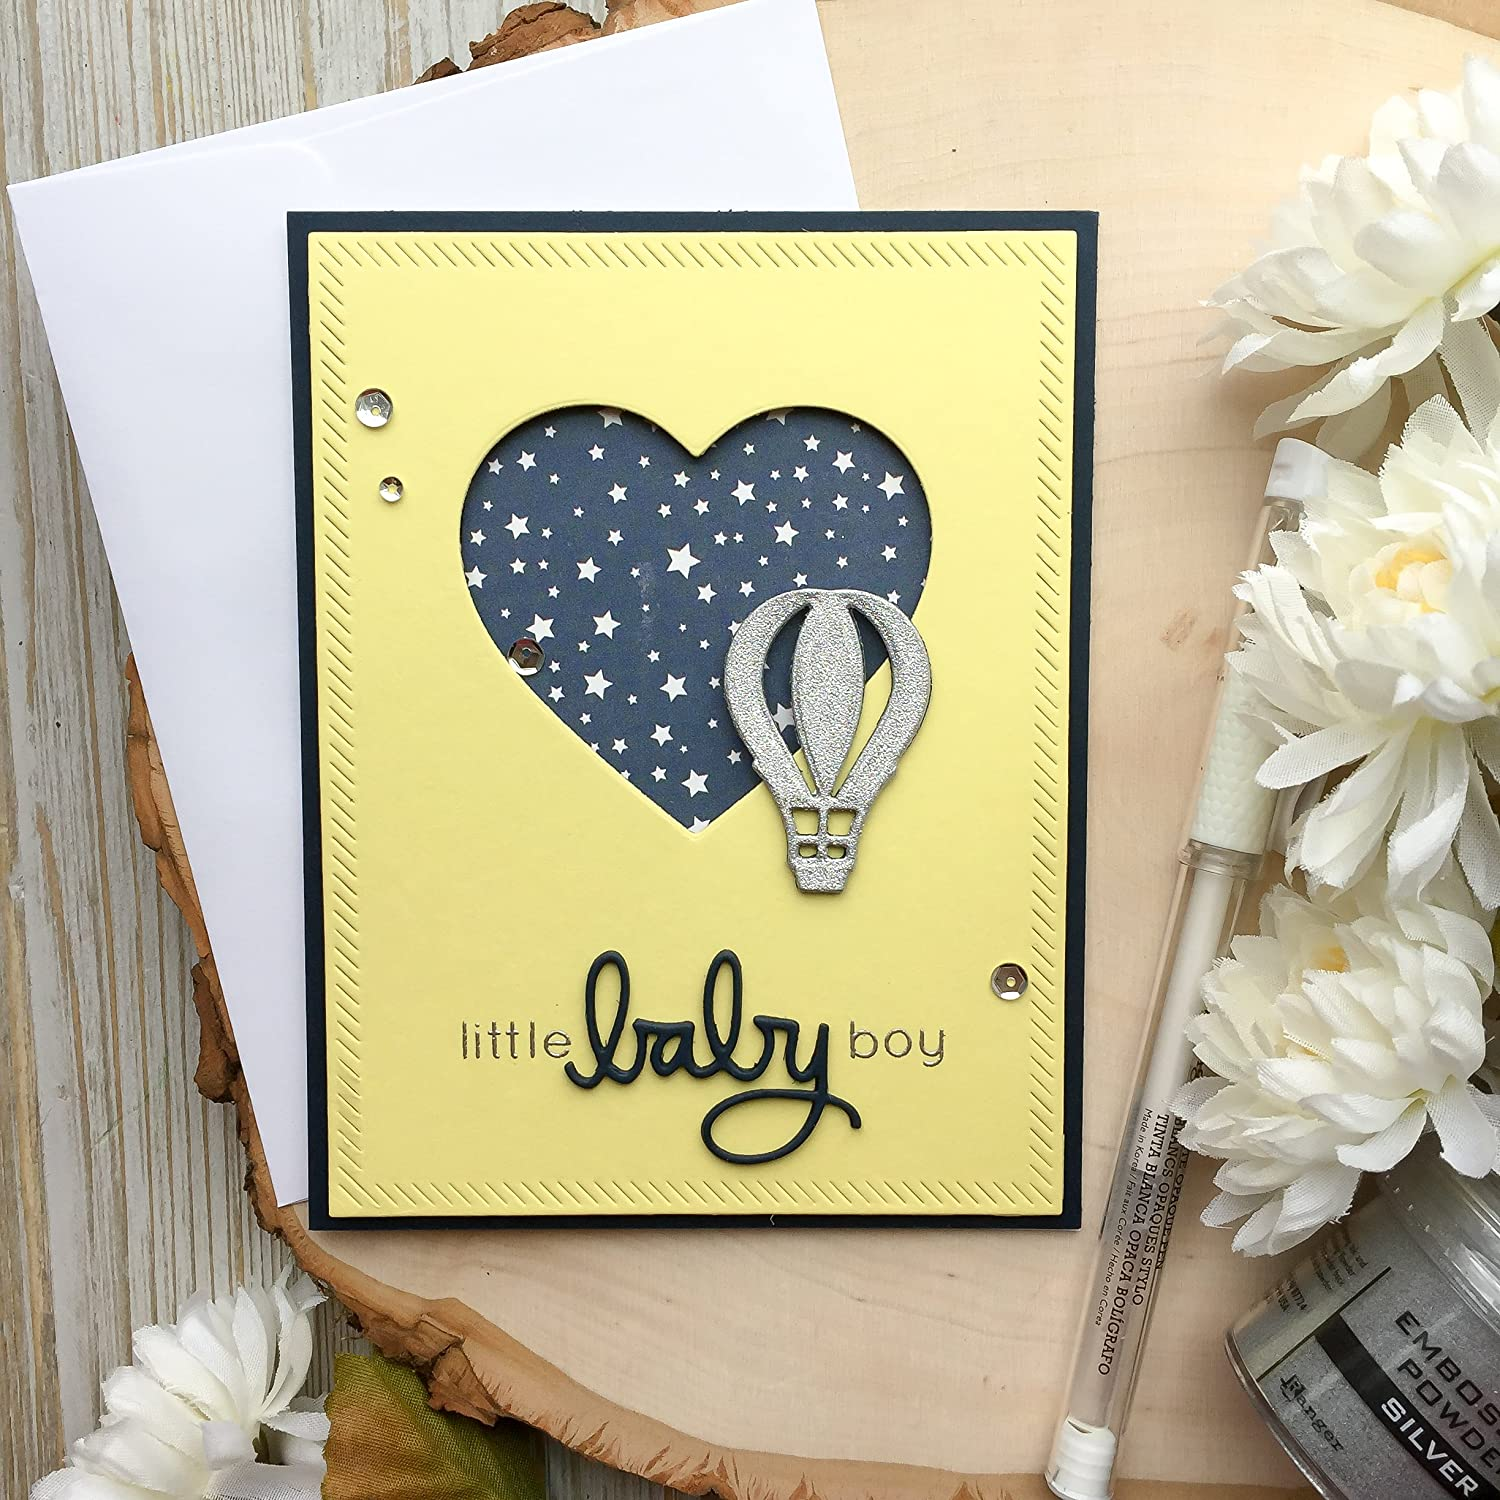 Amazon Com Baby Shower Card Handmade Card Boy Baby Shower Card Baby Boy Cards Neutral Baby Shower Cards Greeting Card Baby Card Boy Its A Boy Handmade